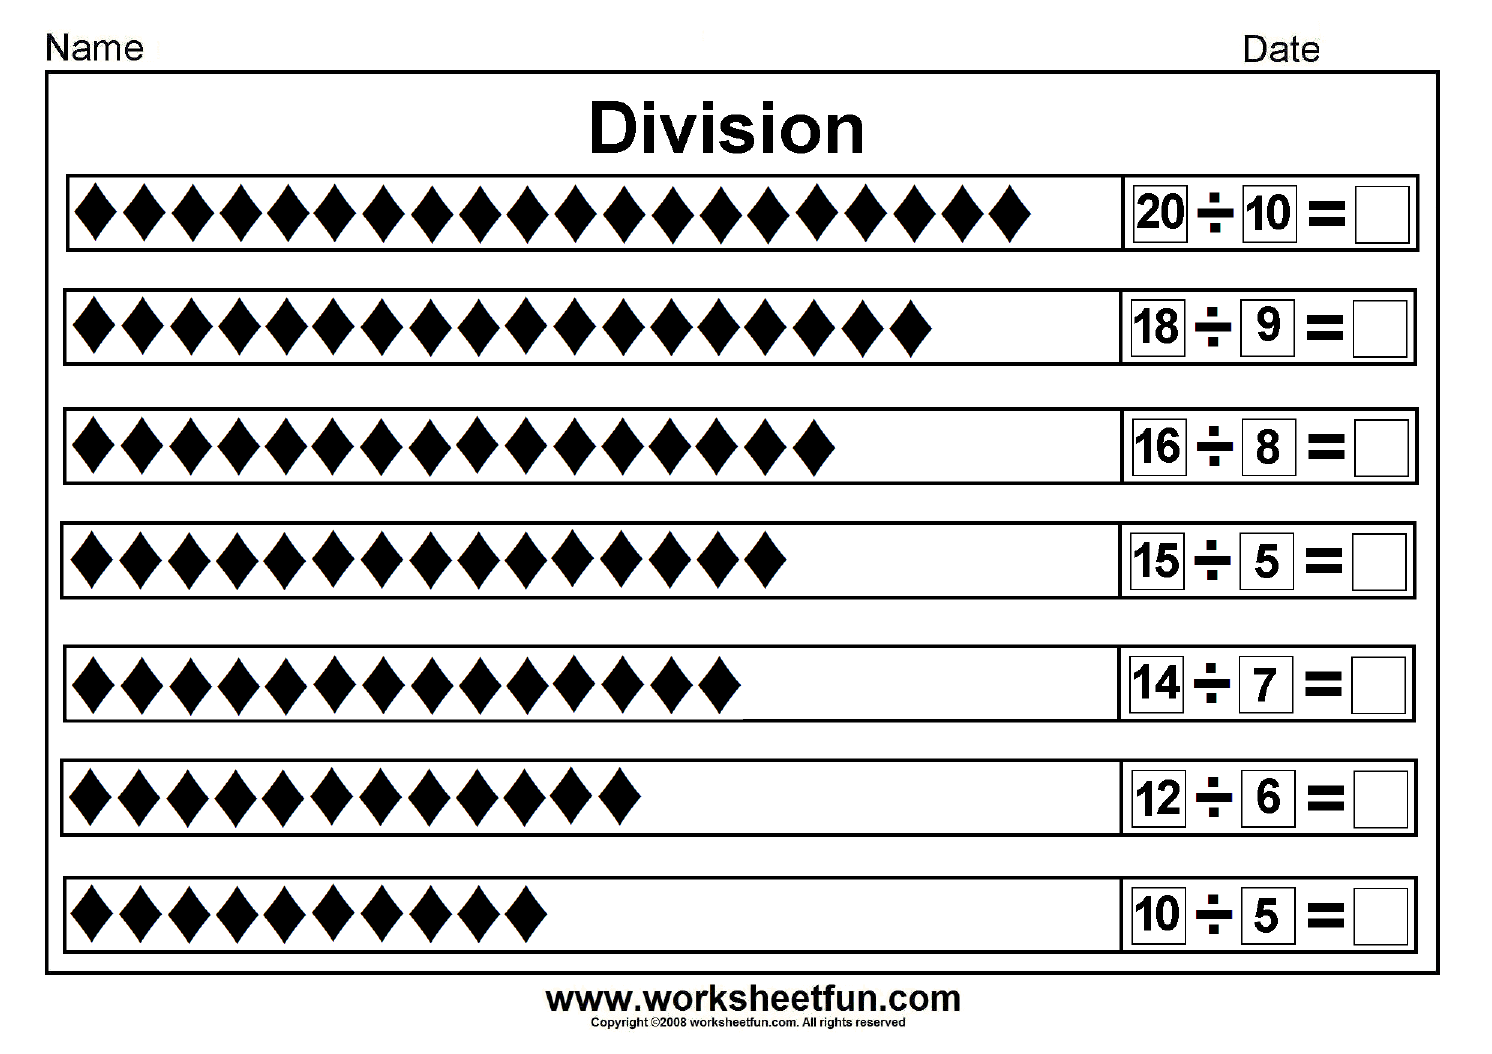 Basic Division As Sharing Worksheet